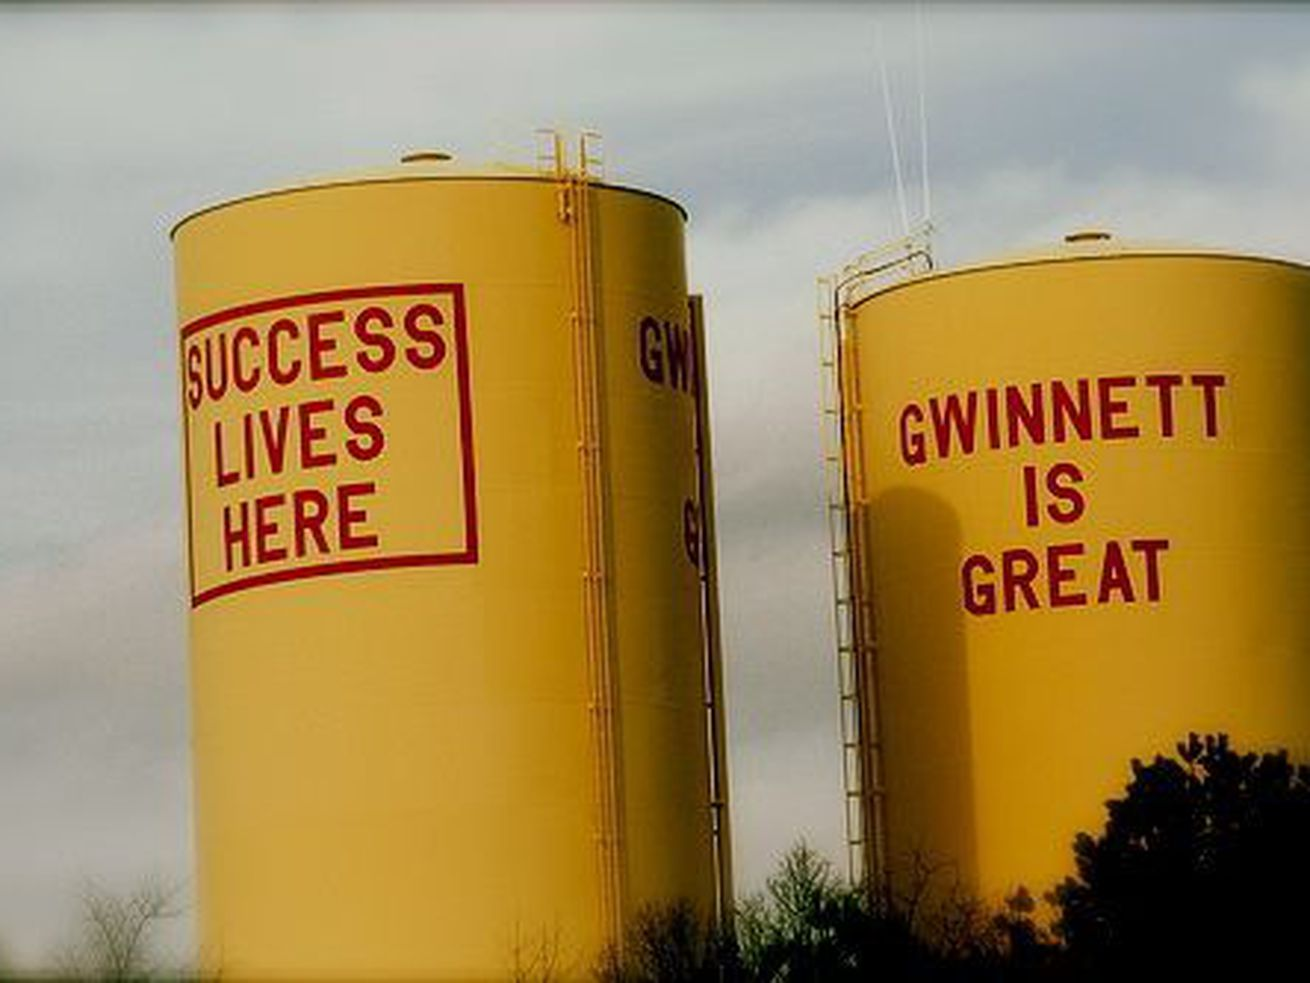 """Two yellow water towers in Gwinnett County. The one on the left shows text reading """"Success lives here,"""" and the one on the right reads """"Gwinnett is great."""